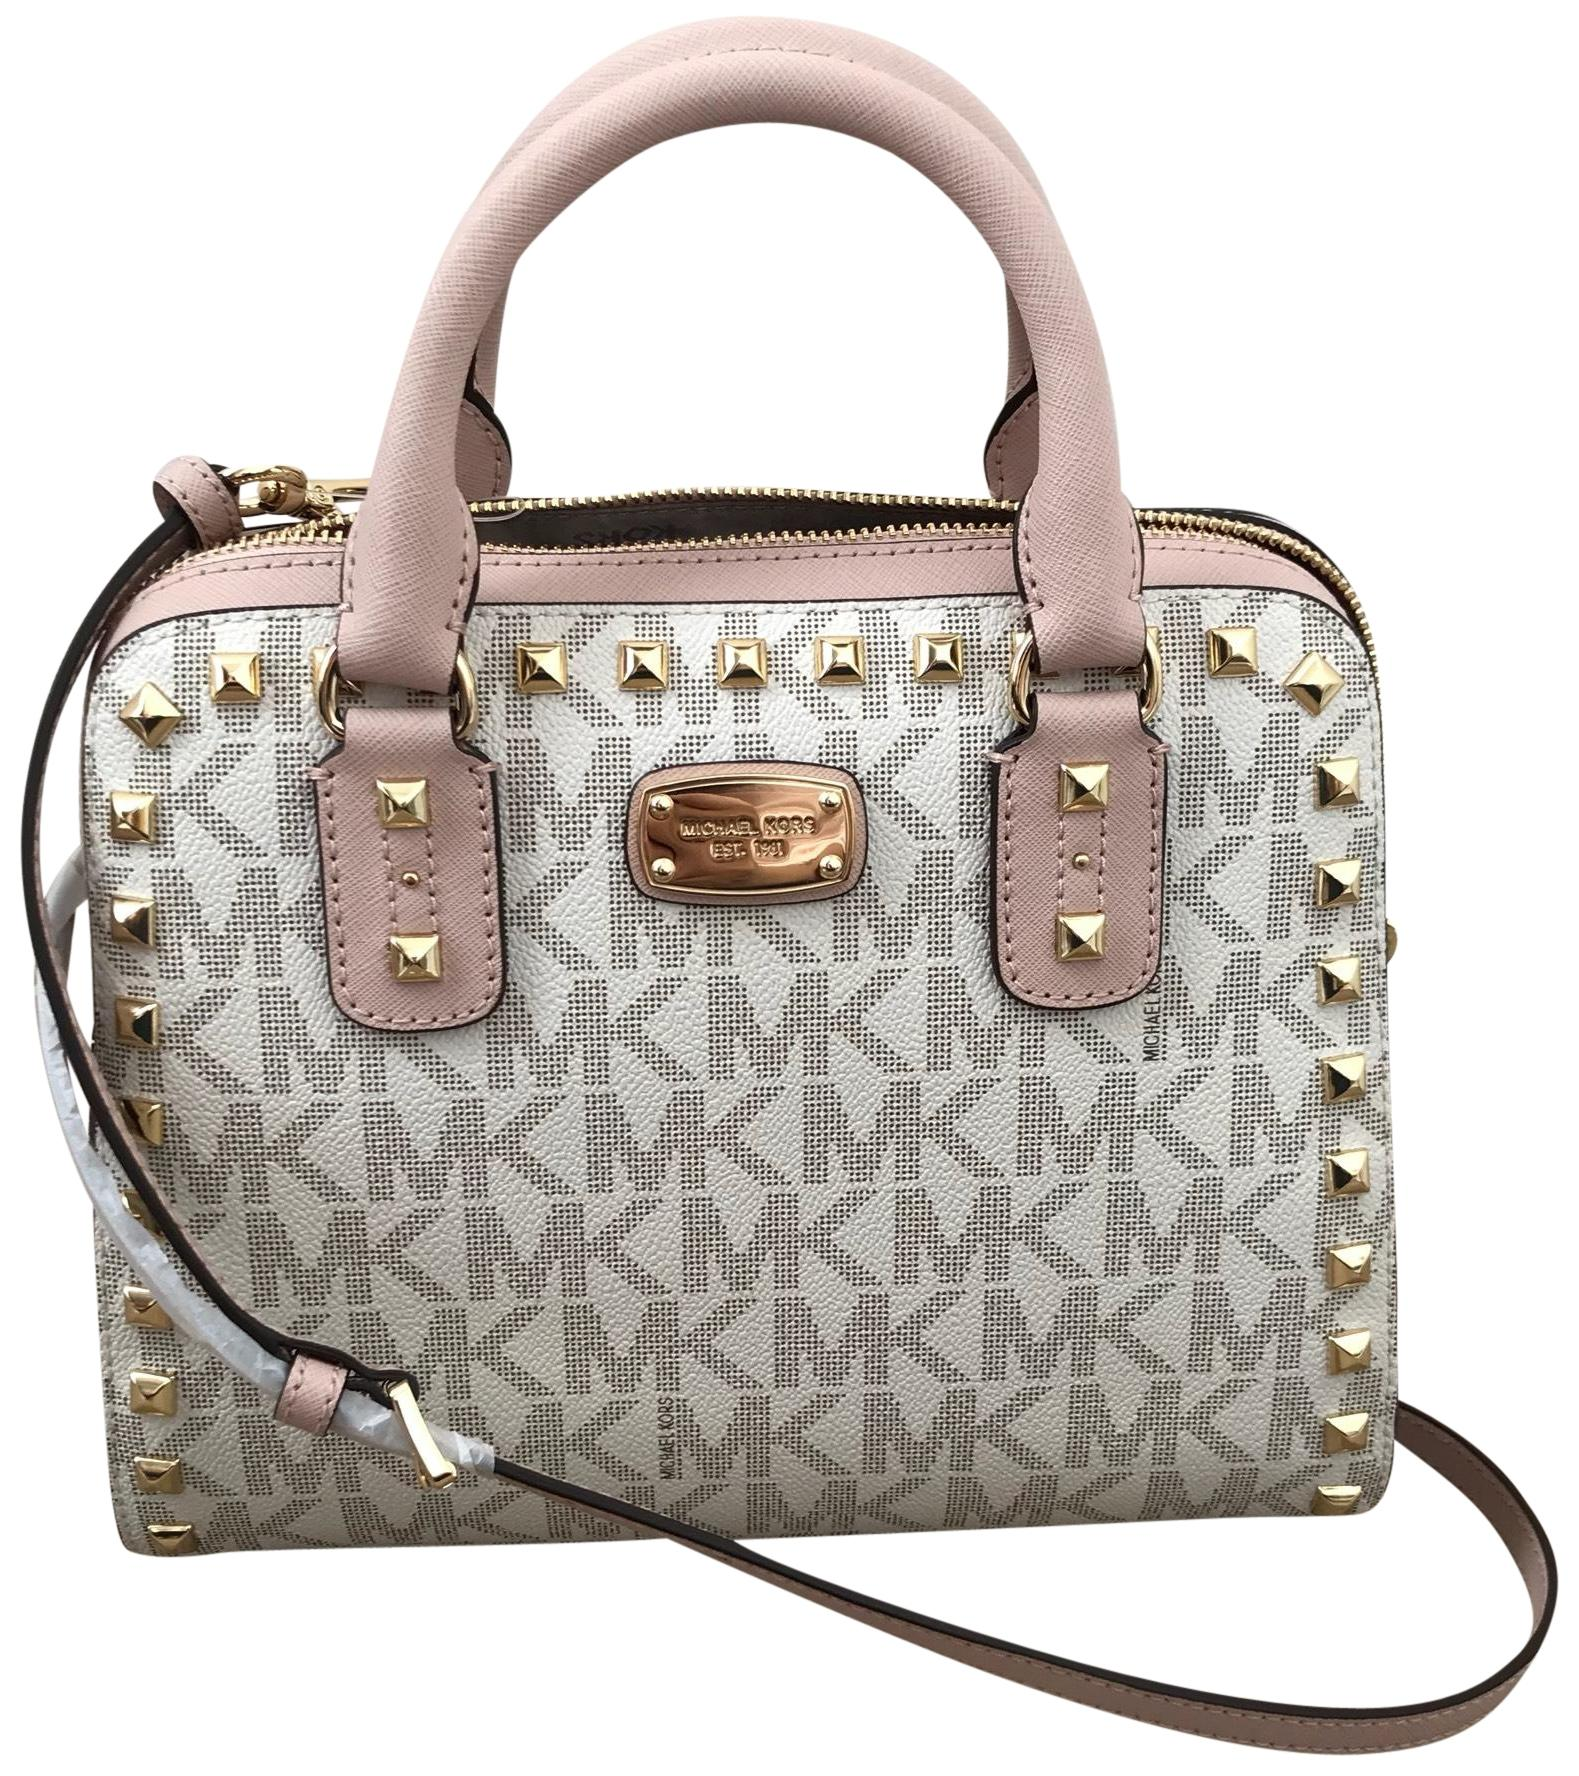 ffcc30c4be5f ... where can i buy michael kors satchel in vanilla ballet d1a5e 02529 ...